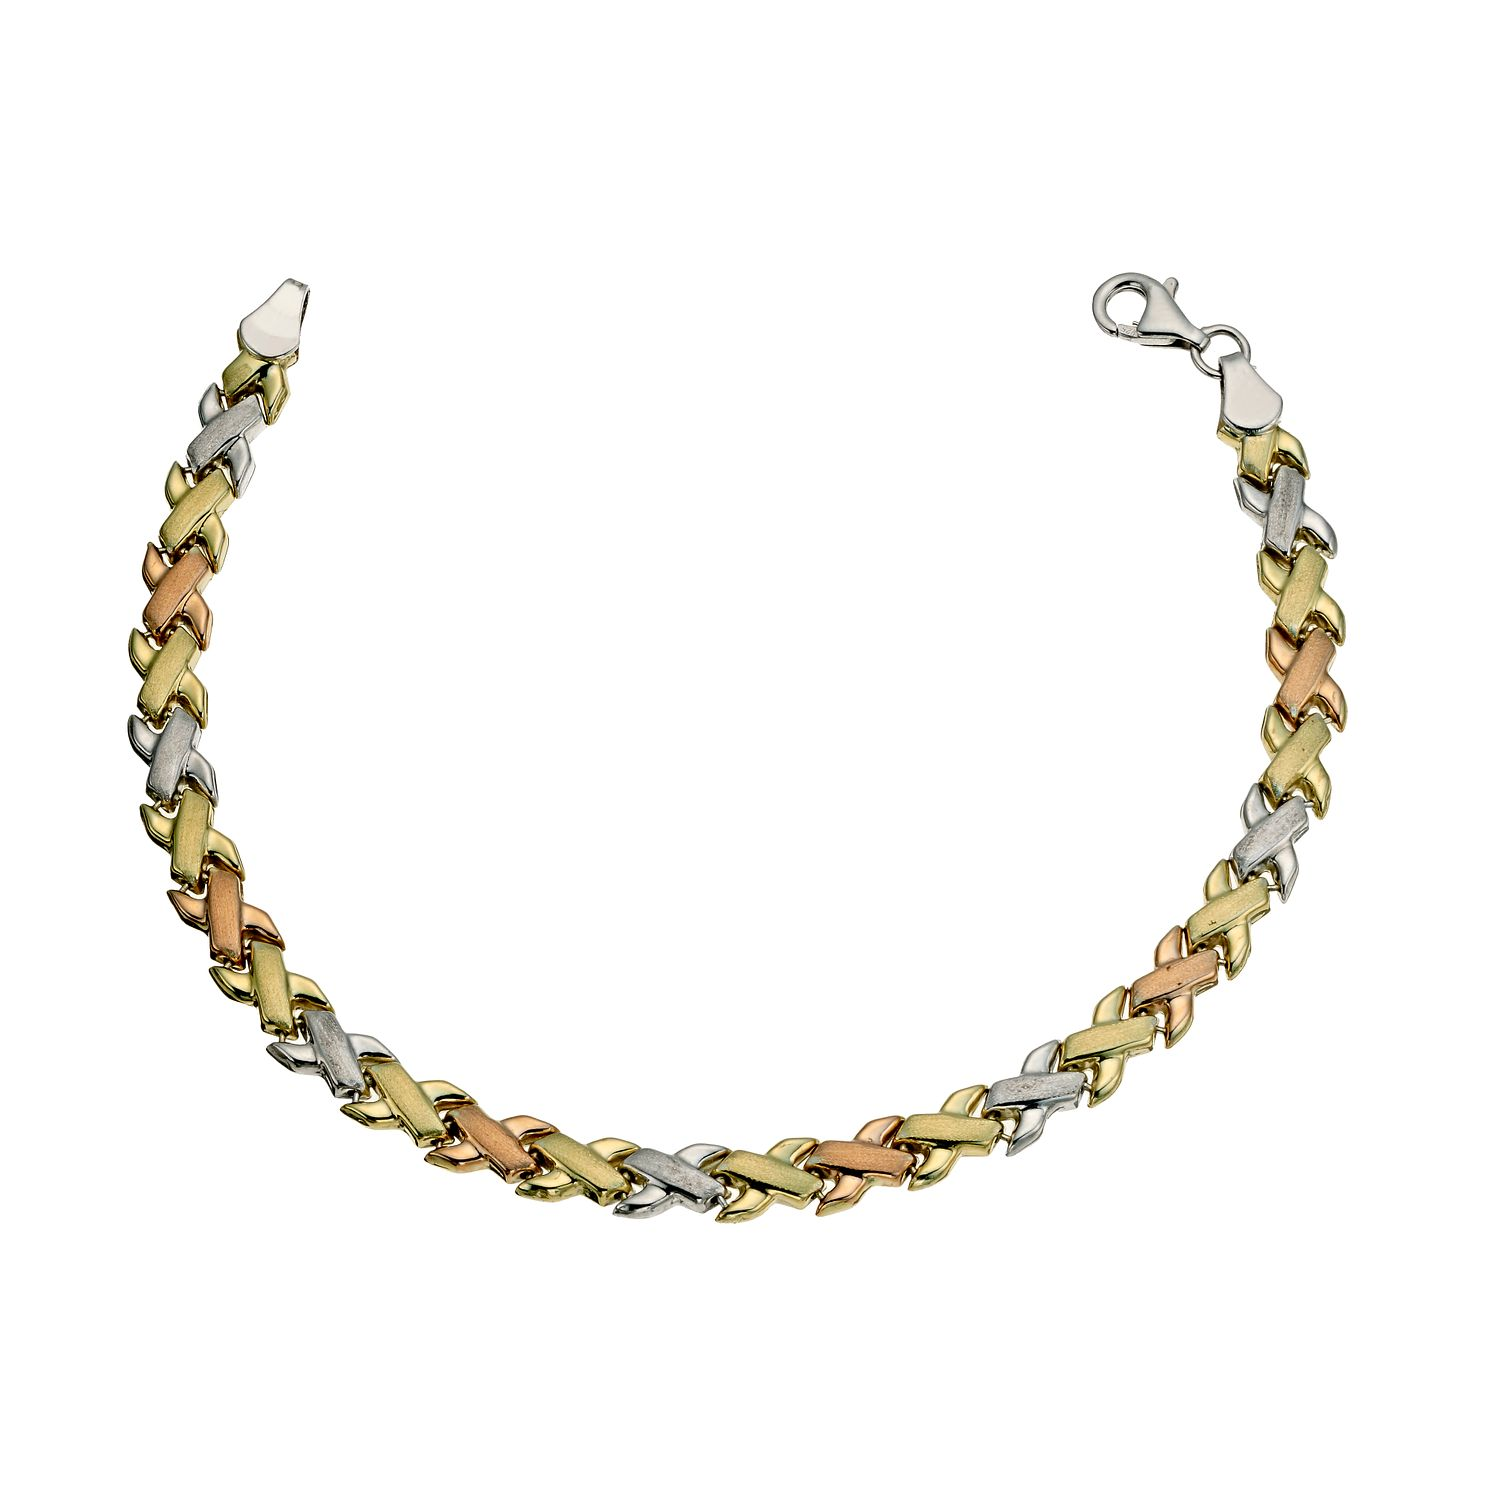 Together Bonded 3 Colour Gold Kiss Bracelet 7.25 inches - Product number 9684352